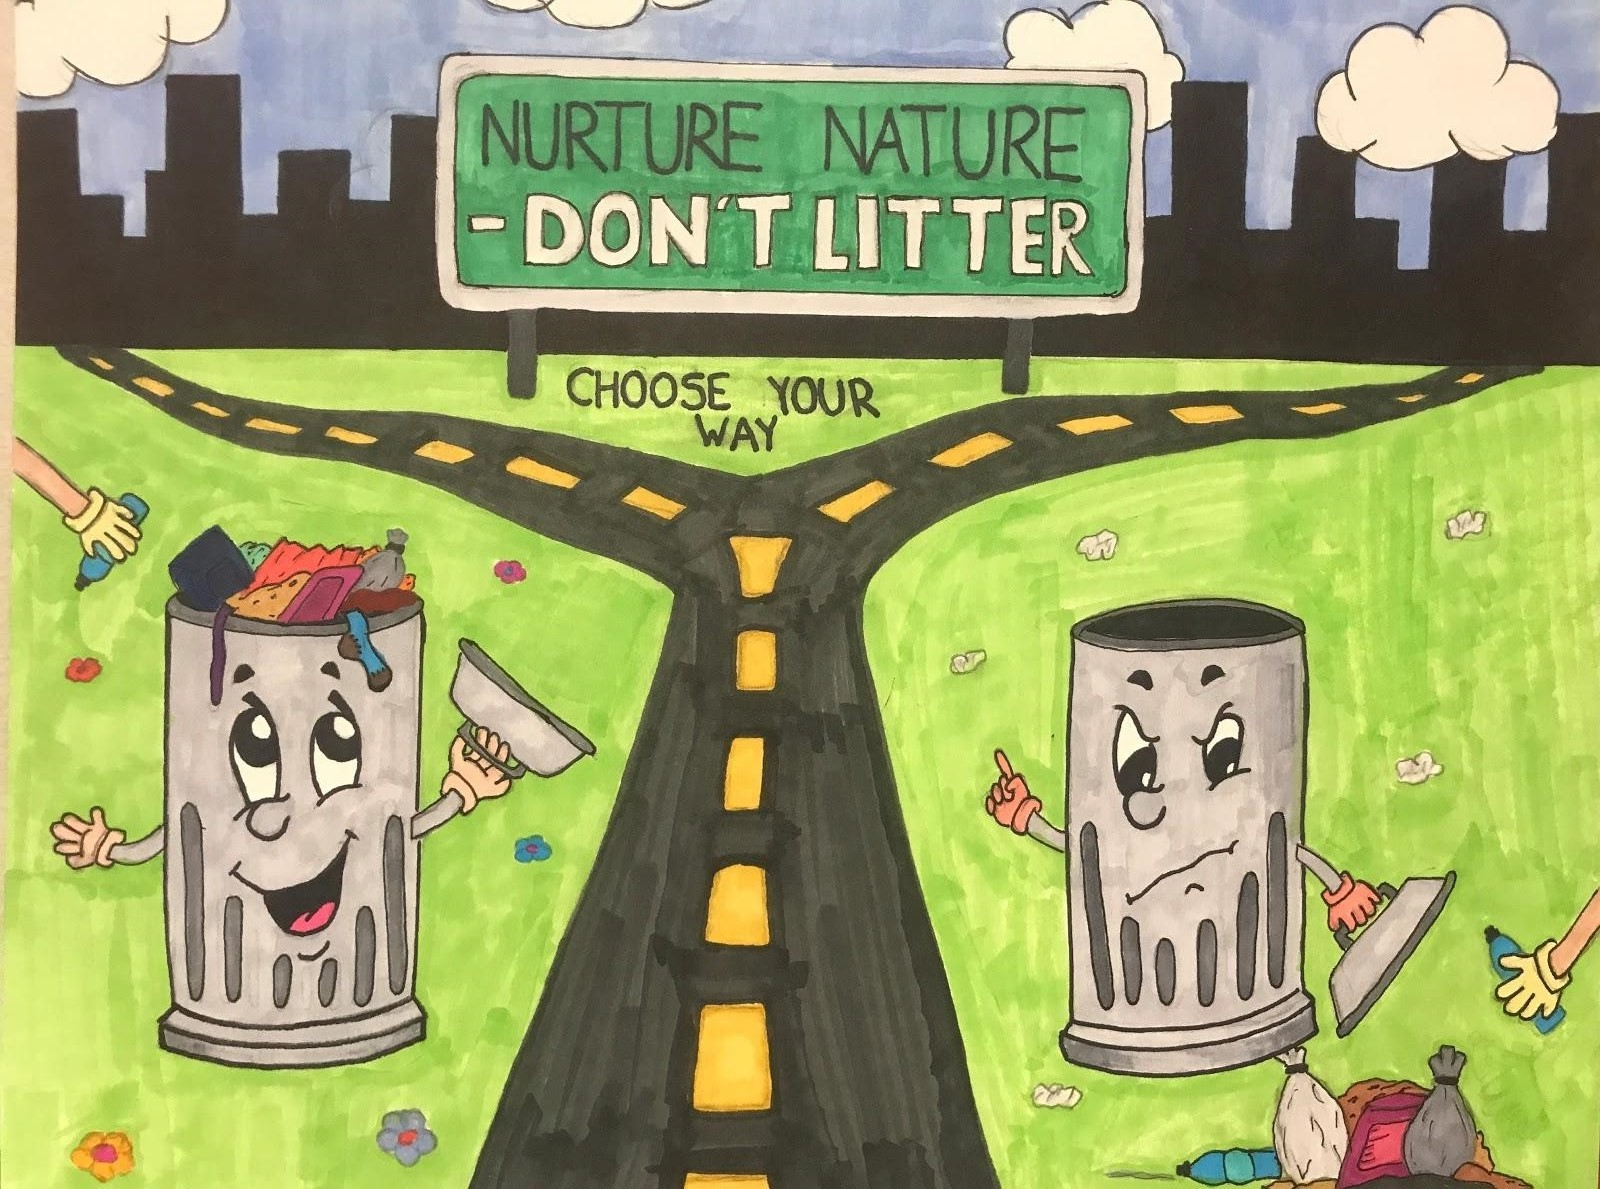 Nurture Nature, Don't Litter